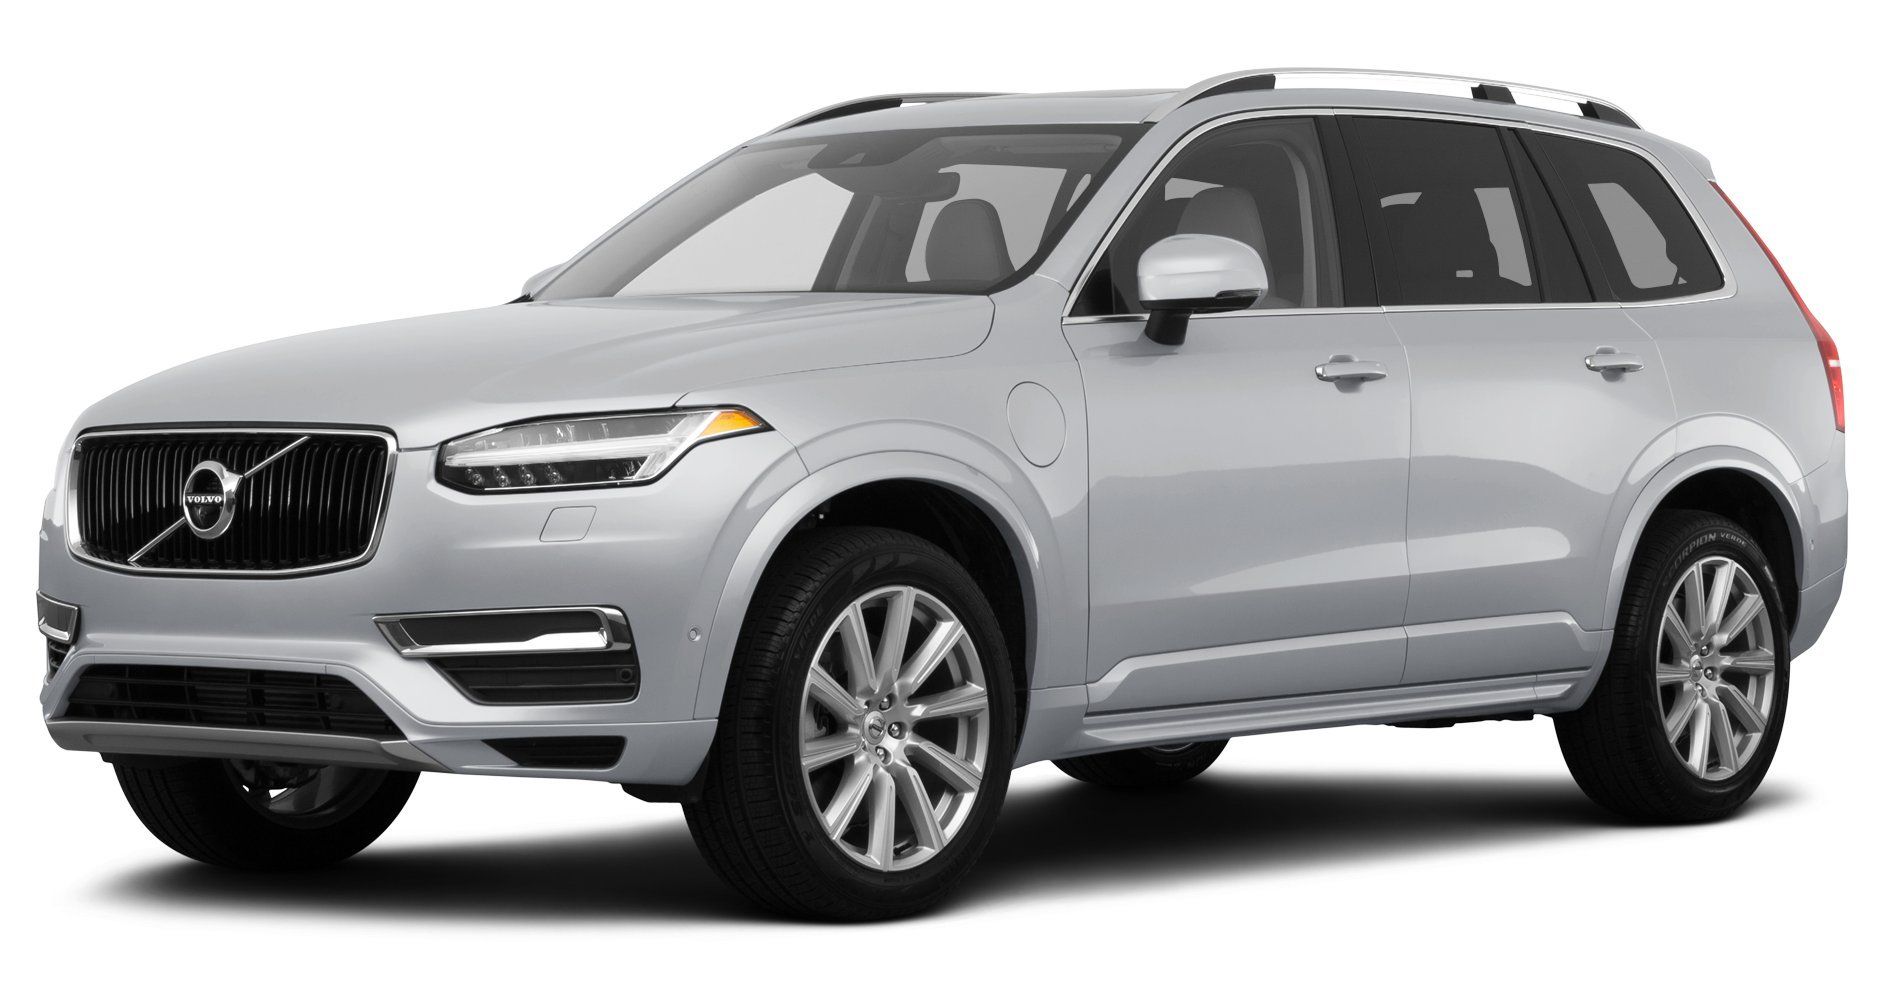 2016 volvo xc90 reviews images and specs vehicles. Black Bedroom Furniture Sets. Home Design Ideas